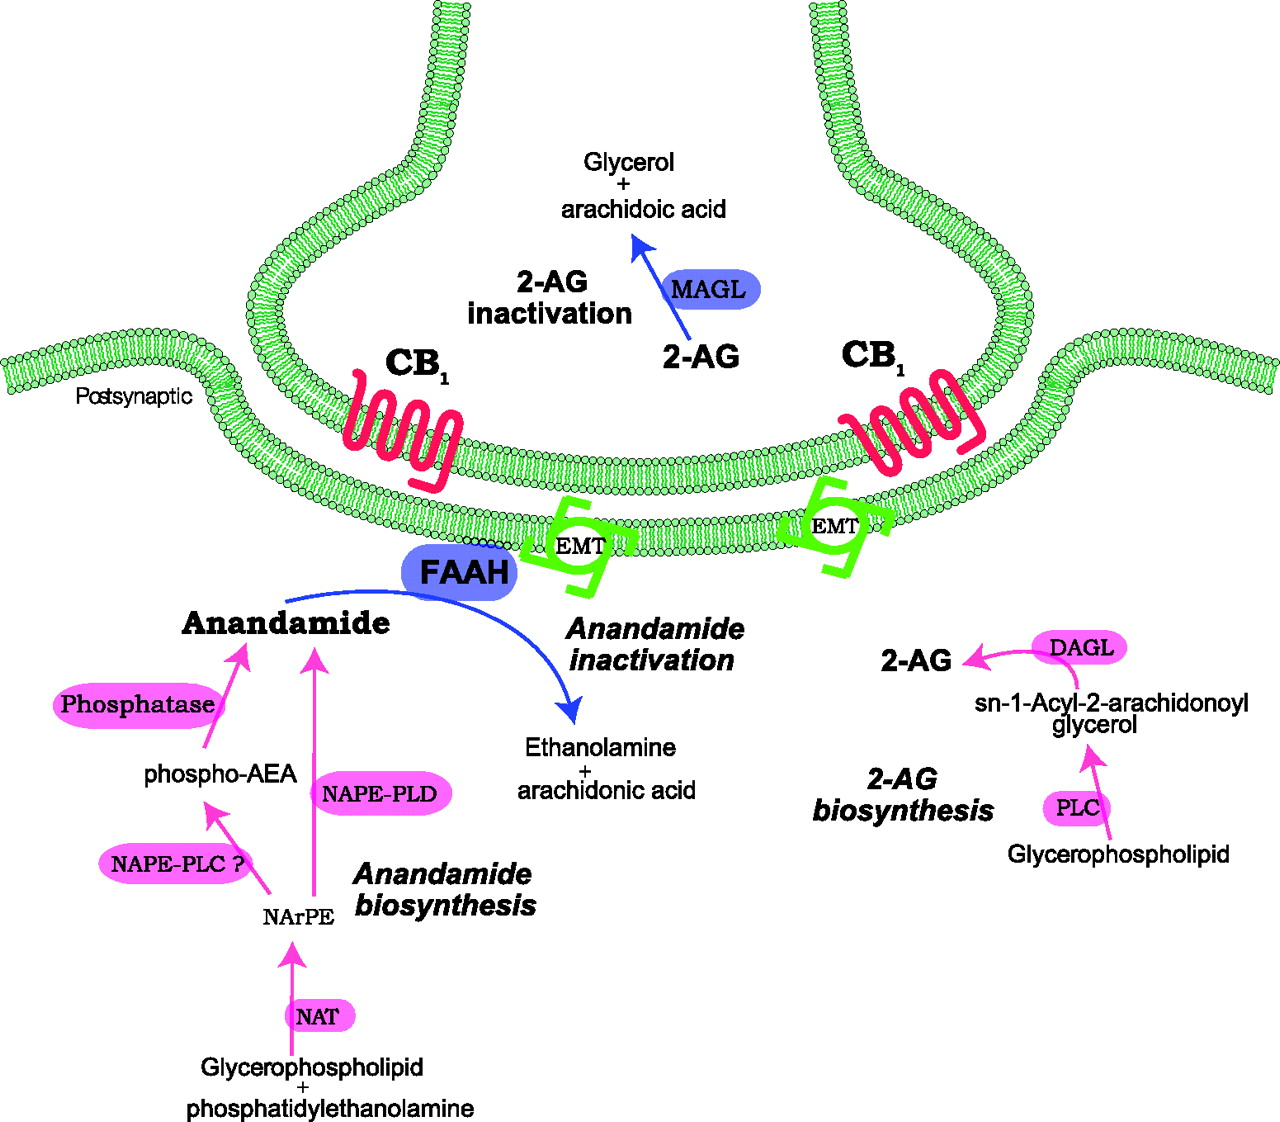 The Endocannabinoid System as an Emerging Target of